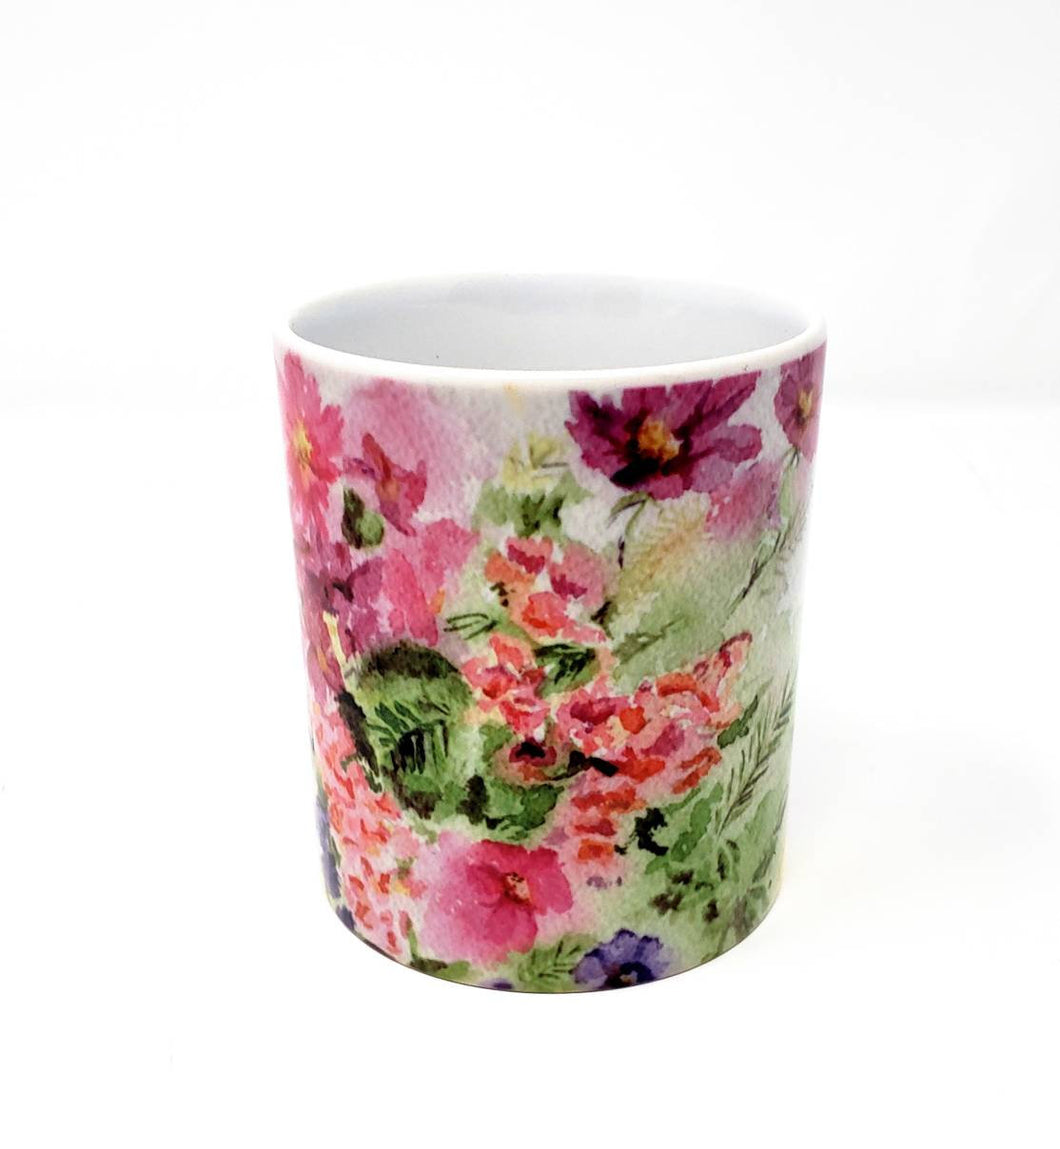 Floral Coffee Mugs Colorful Mug Latte Mug Camp Mug Camper Cup Pink Floral cup gift for mom gift for her large coffee mug Leigh Barry Coffee